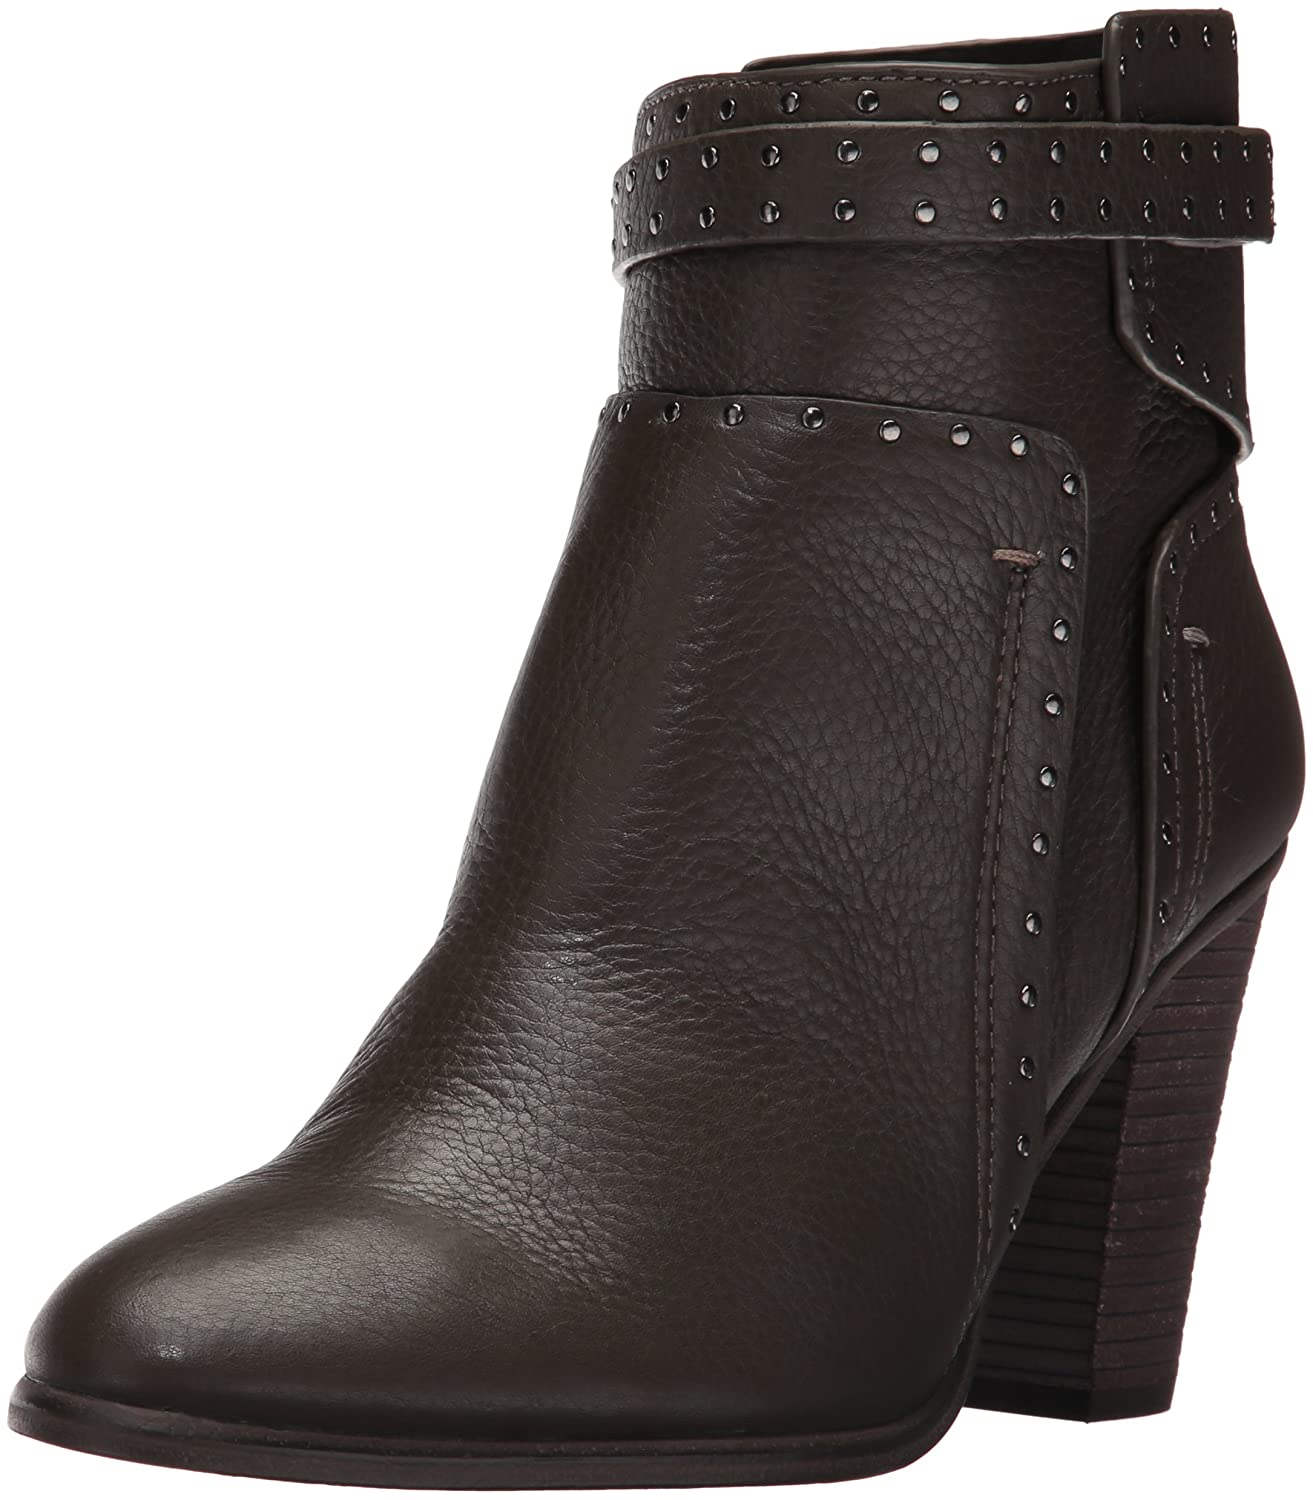 2d926cb28 Vince Camuto Women s Faythes Ankle Ankle Ankle Bootie B01J6E2X0U 10 B(M) US